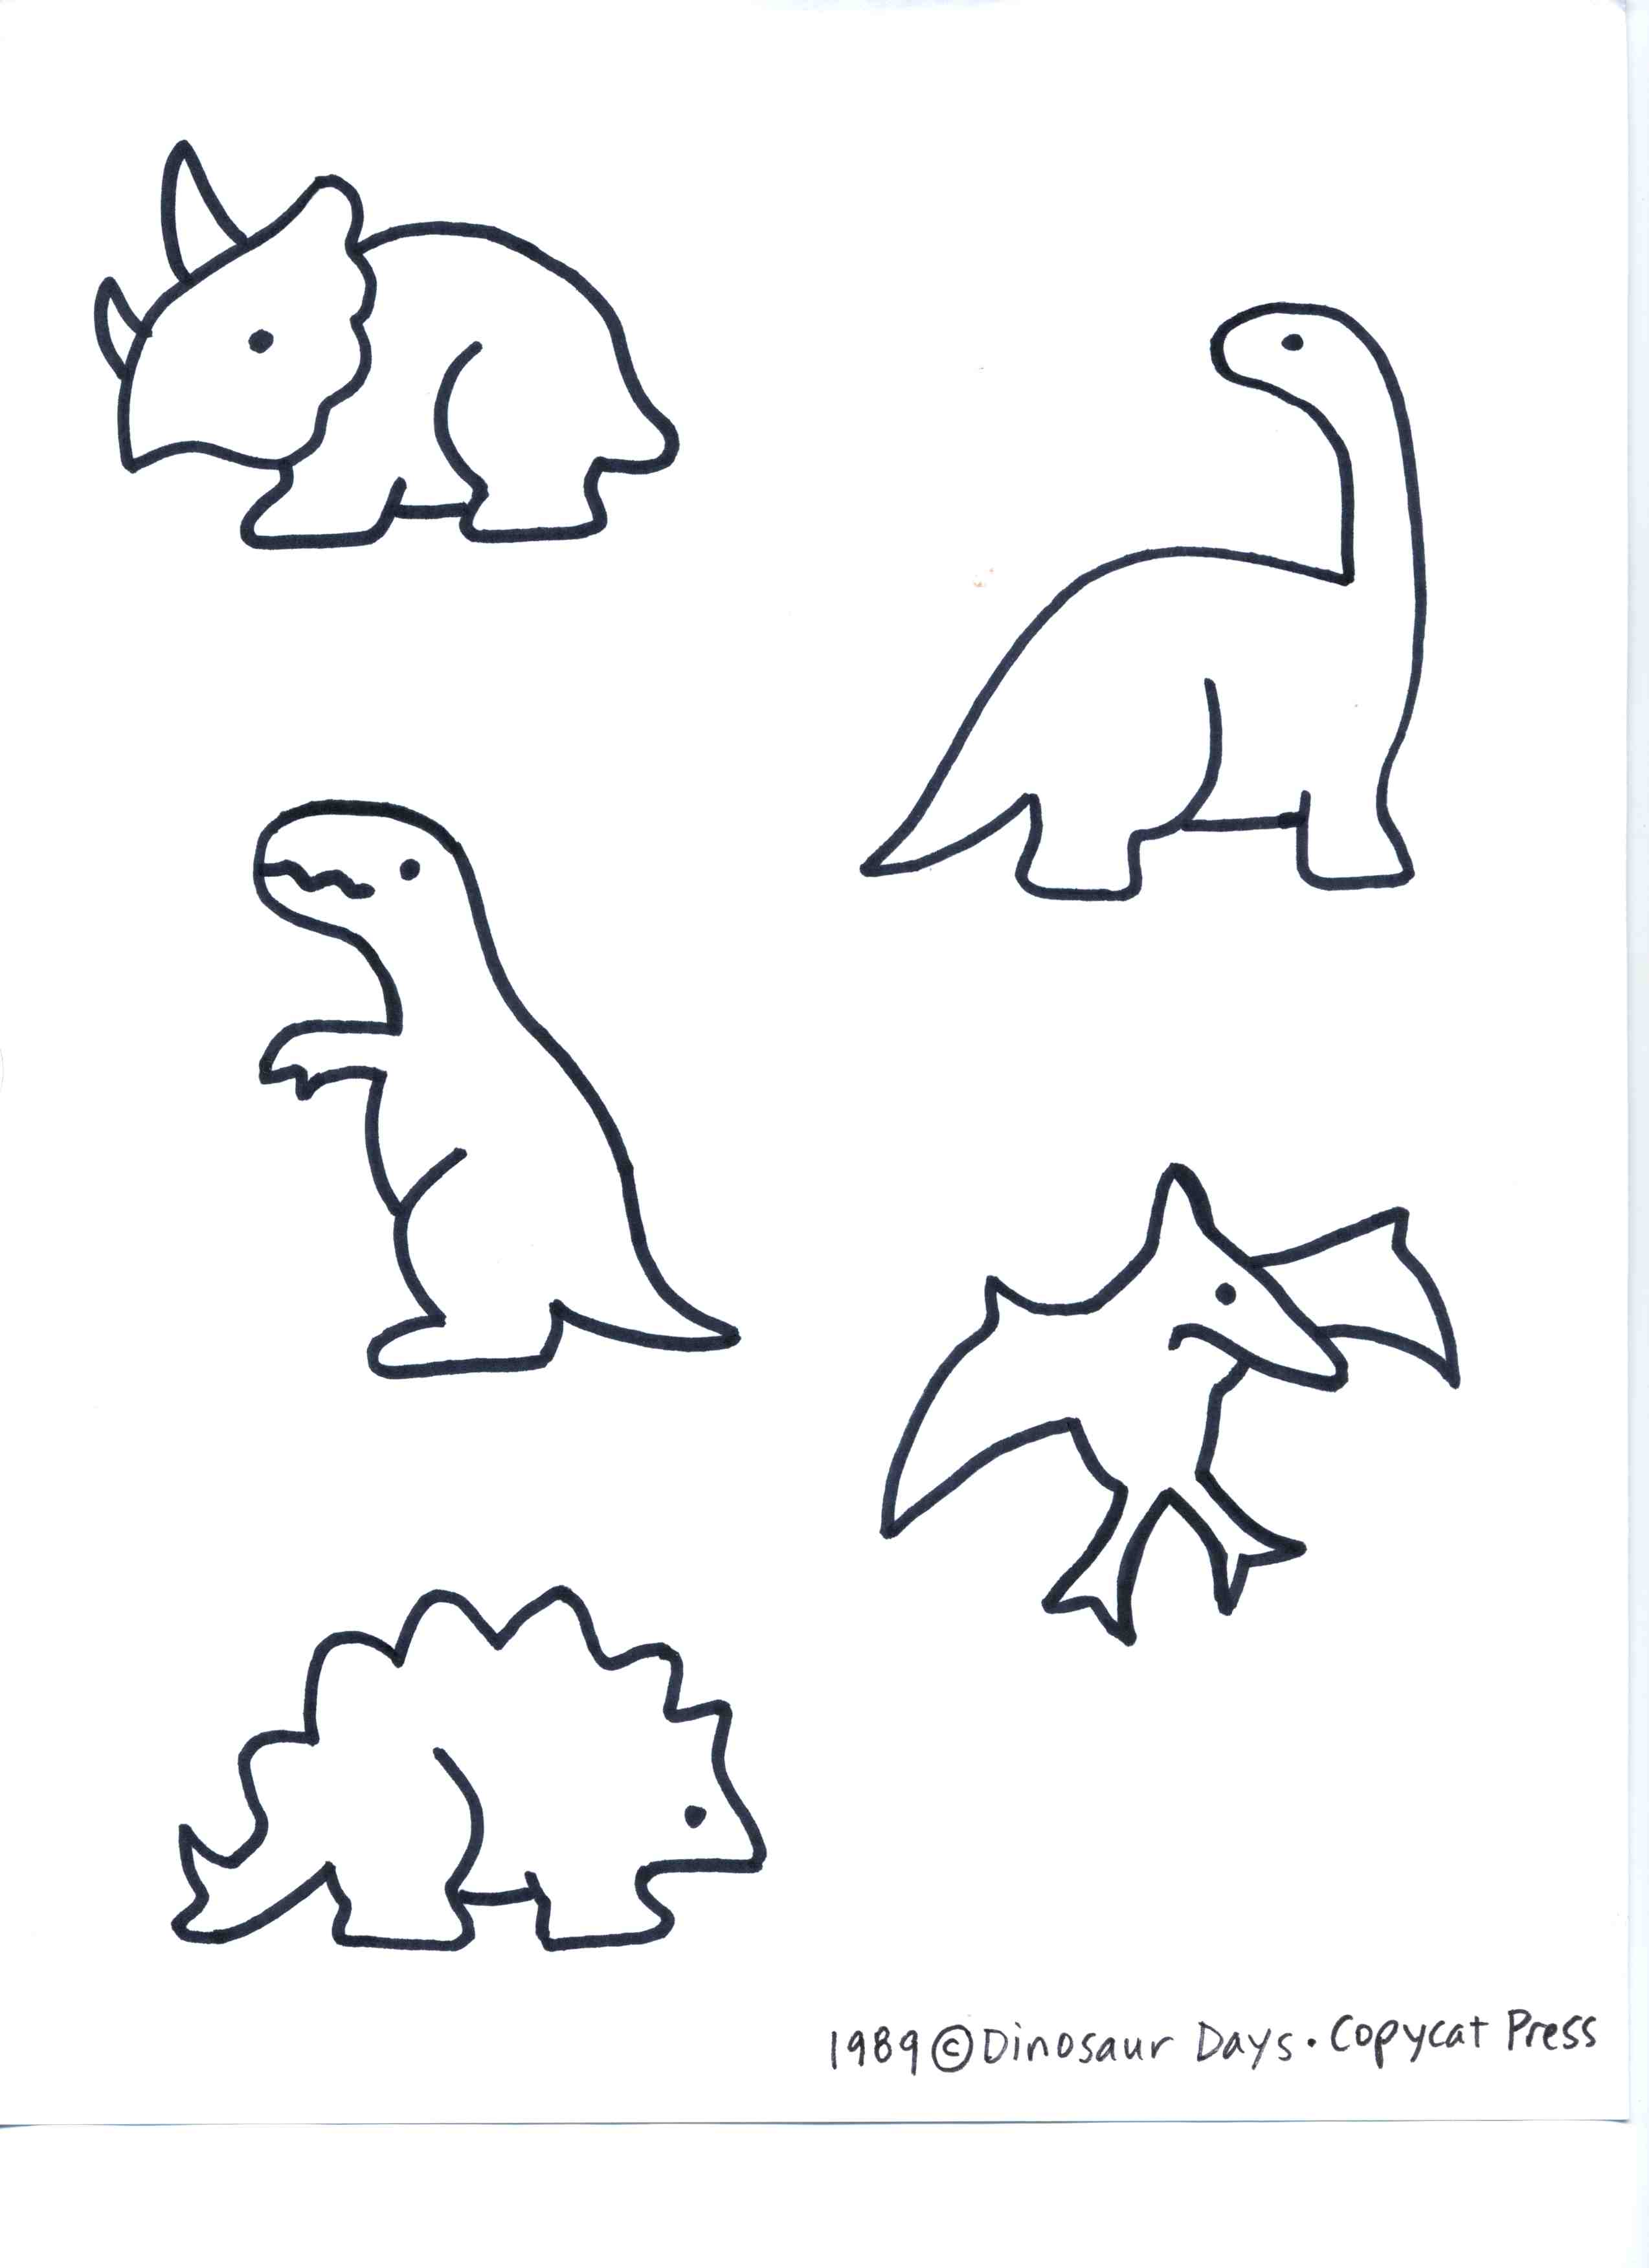 Dinosaur and volcano day preschool camp eclectic lamb for Dinosaur templates to print